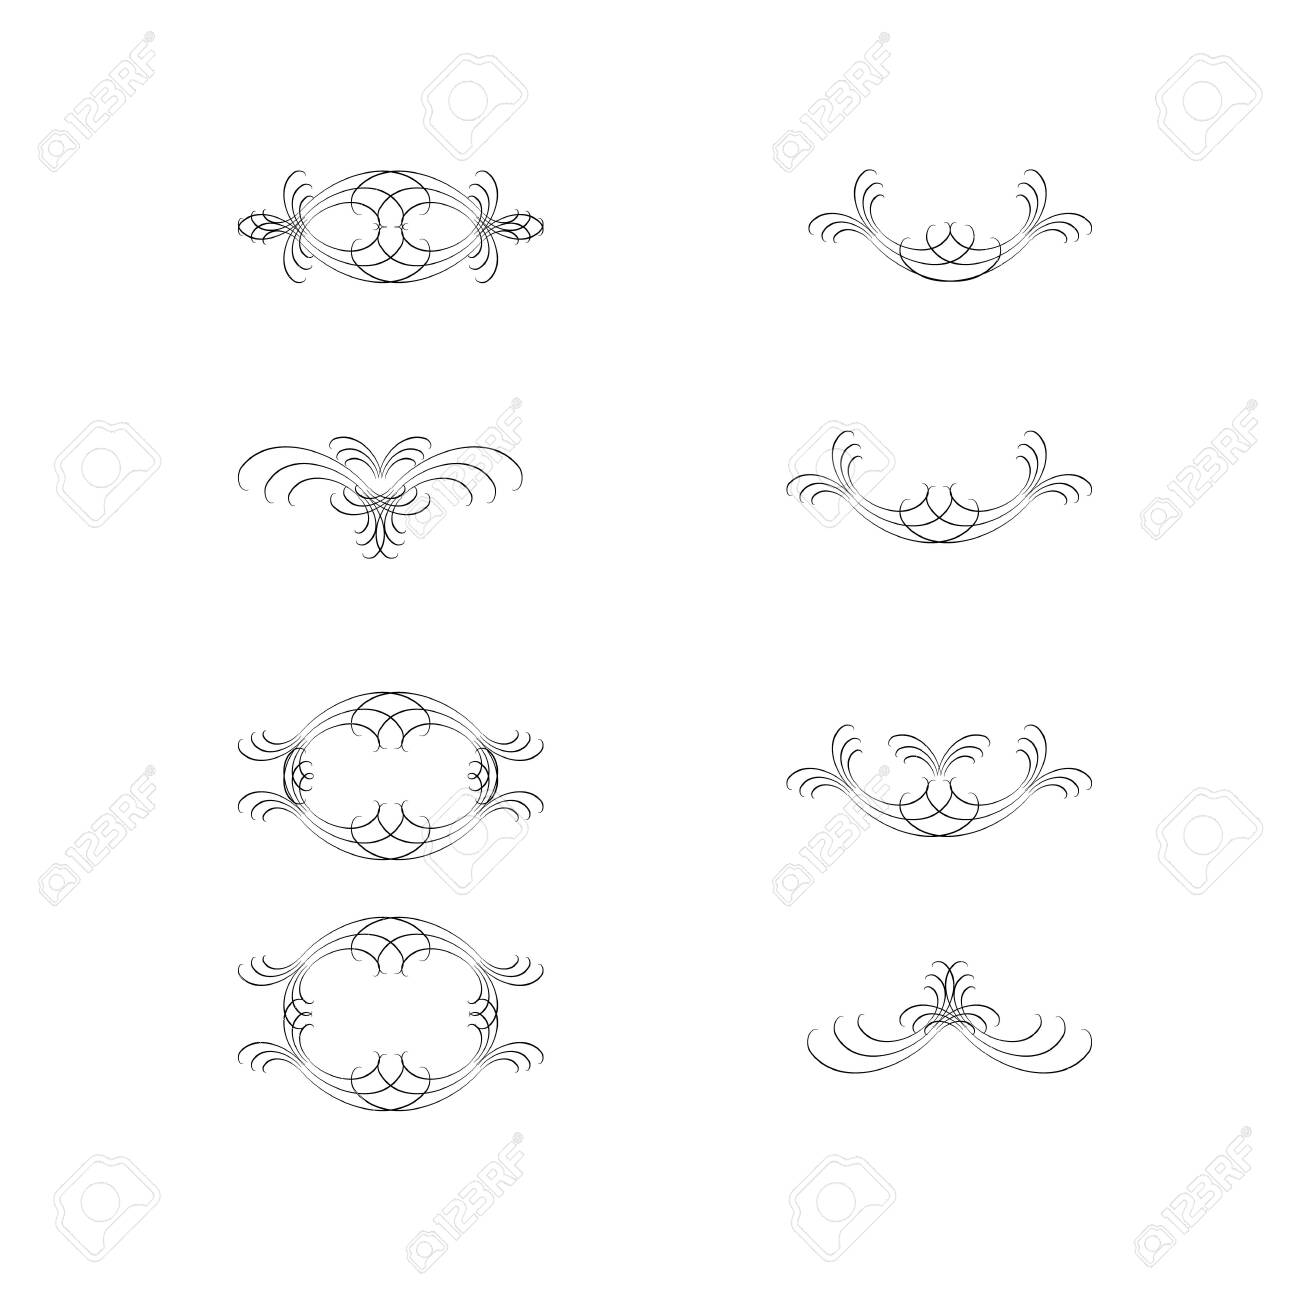 Decorative swirls dividers. Elegance line for frame, invitation. Delimiter old text, calligraphic swirl border ornaments and vintage divider. Ornament curl, calligraphy victorian lines. Vector icons - 149913258